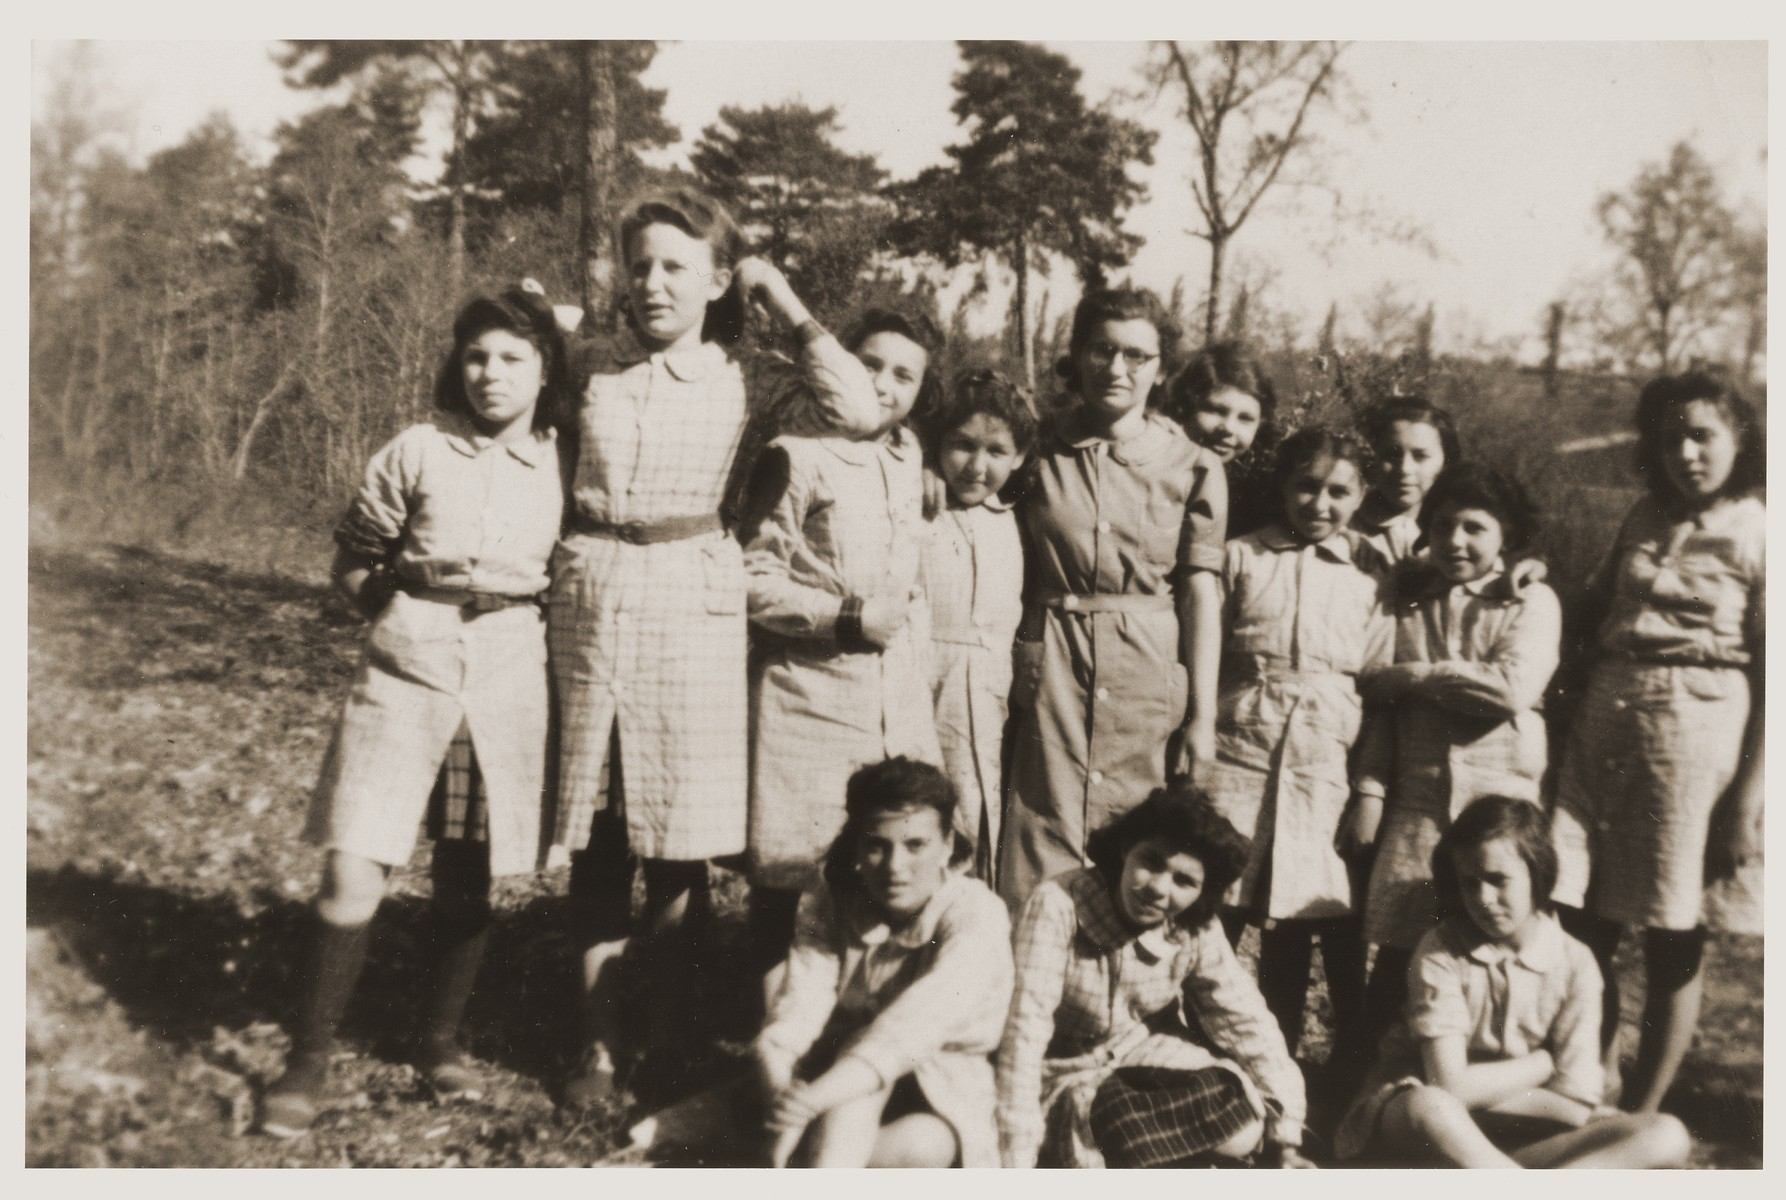 Group portrait of Jewish girls who are living in hiding at the children's home in Le Coudray.  Among those pictured (with their aliases) are: Eva Tuchsznajder (Yvonne Drapier), Helene Klizman (Gerlier), Fanny Lamberger (Lambert), and Irene Burenstein (Burin).  Their counselor was Renee Vigneron.